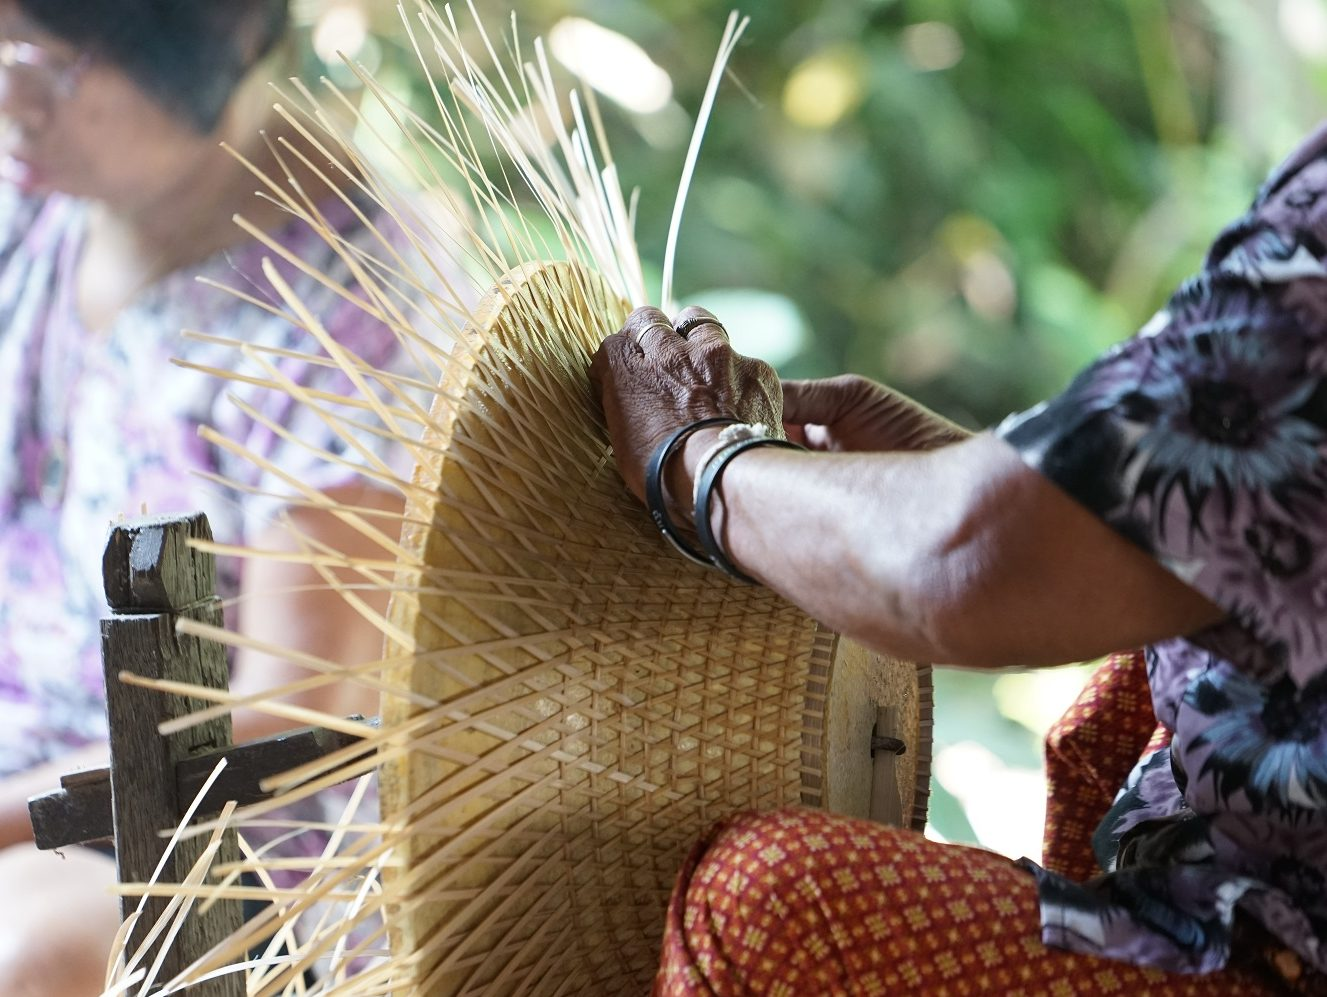 handcrafting straw hats